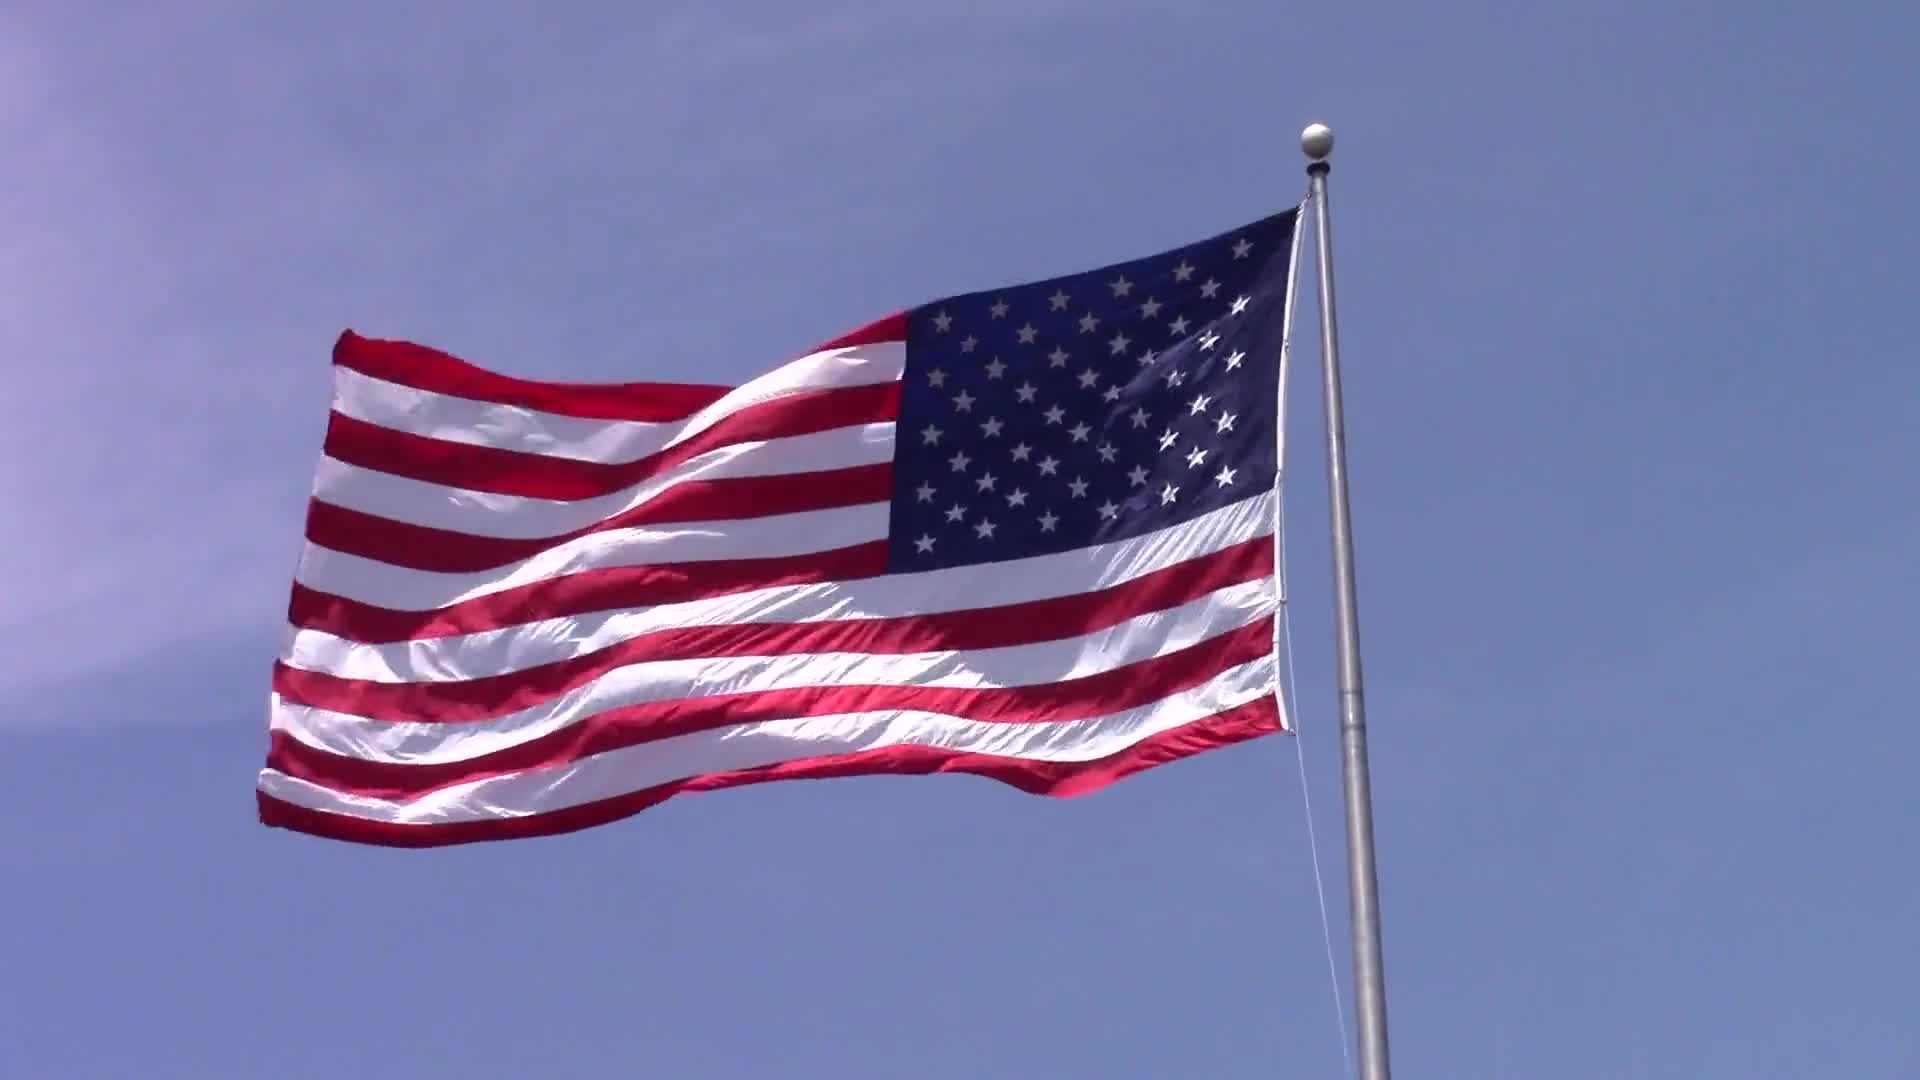 American flag flag blowing in the wind